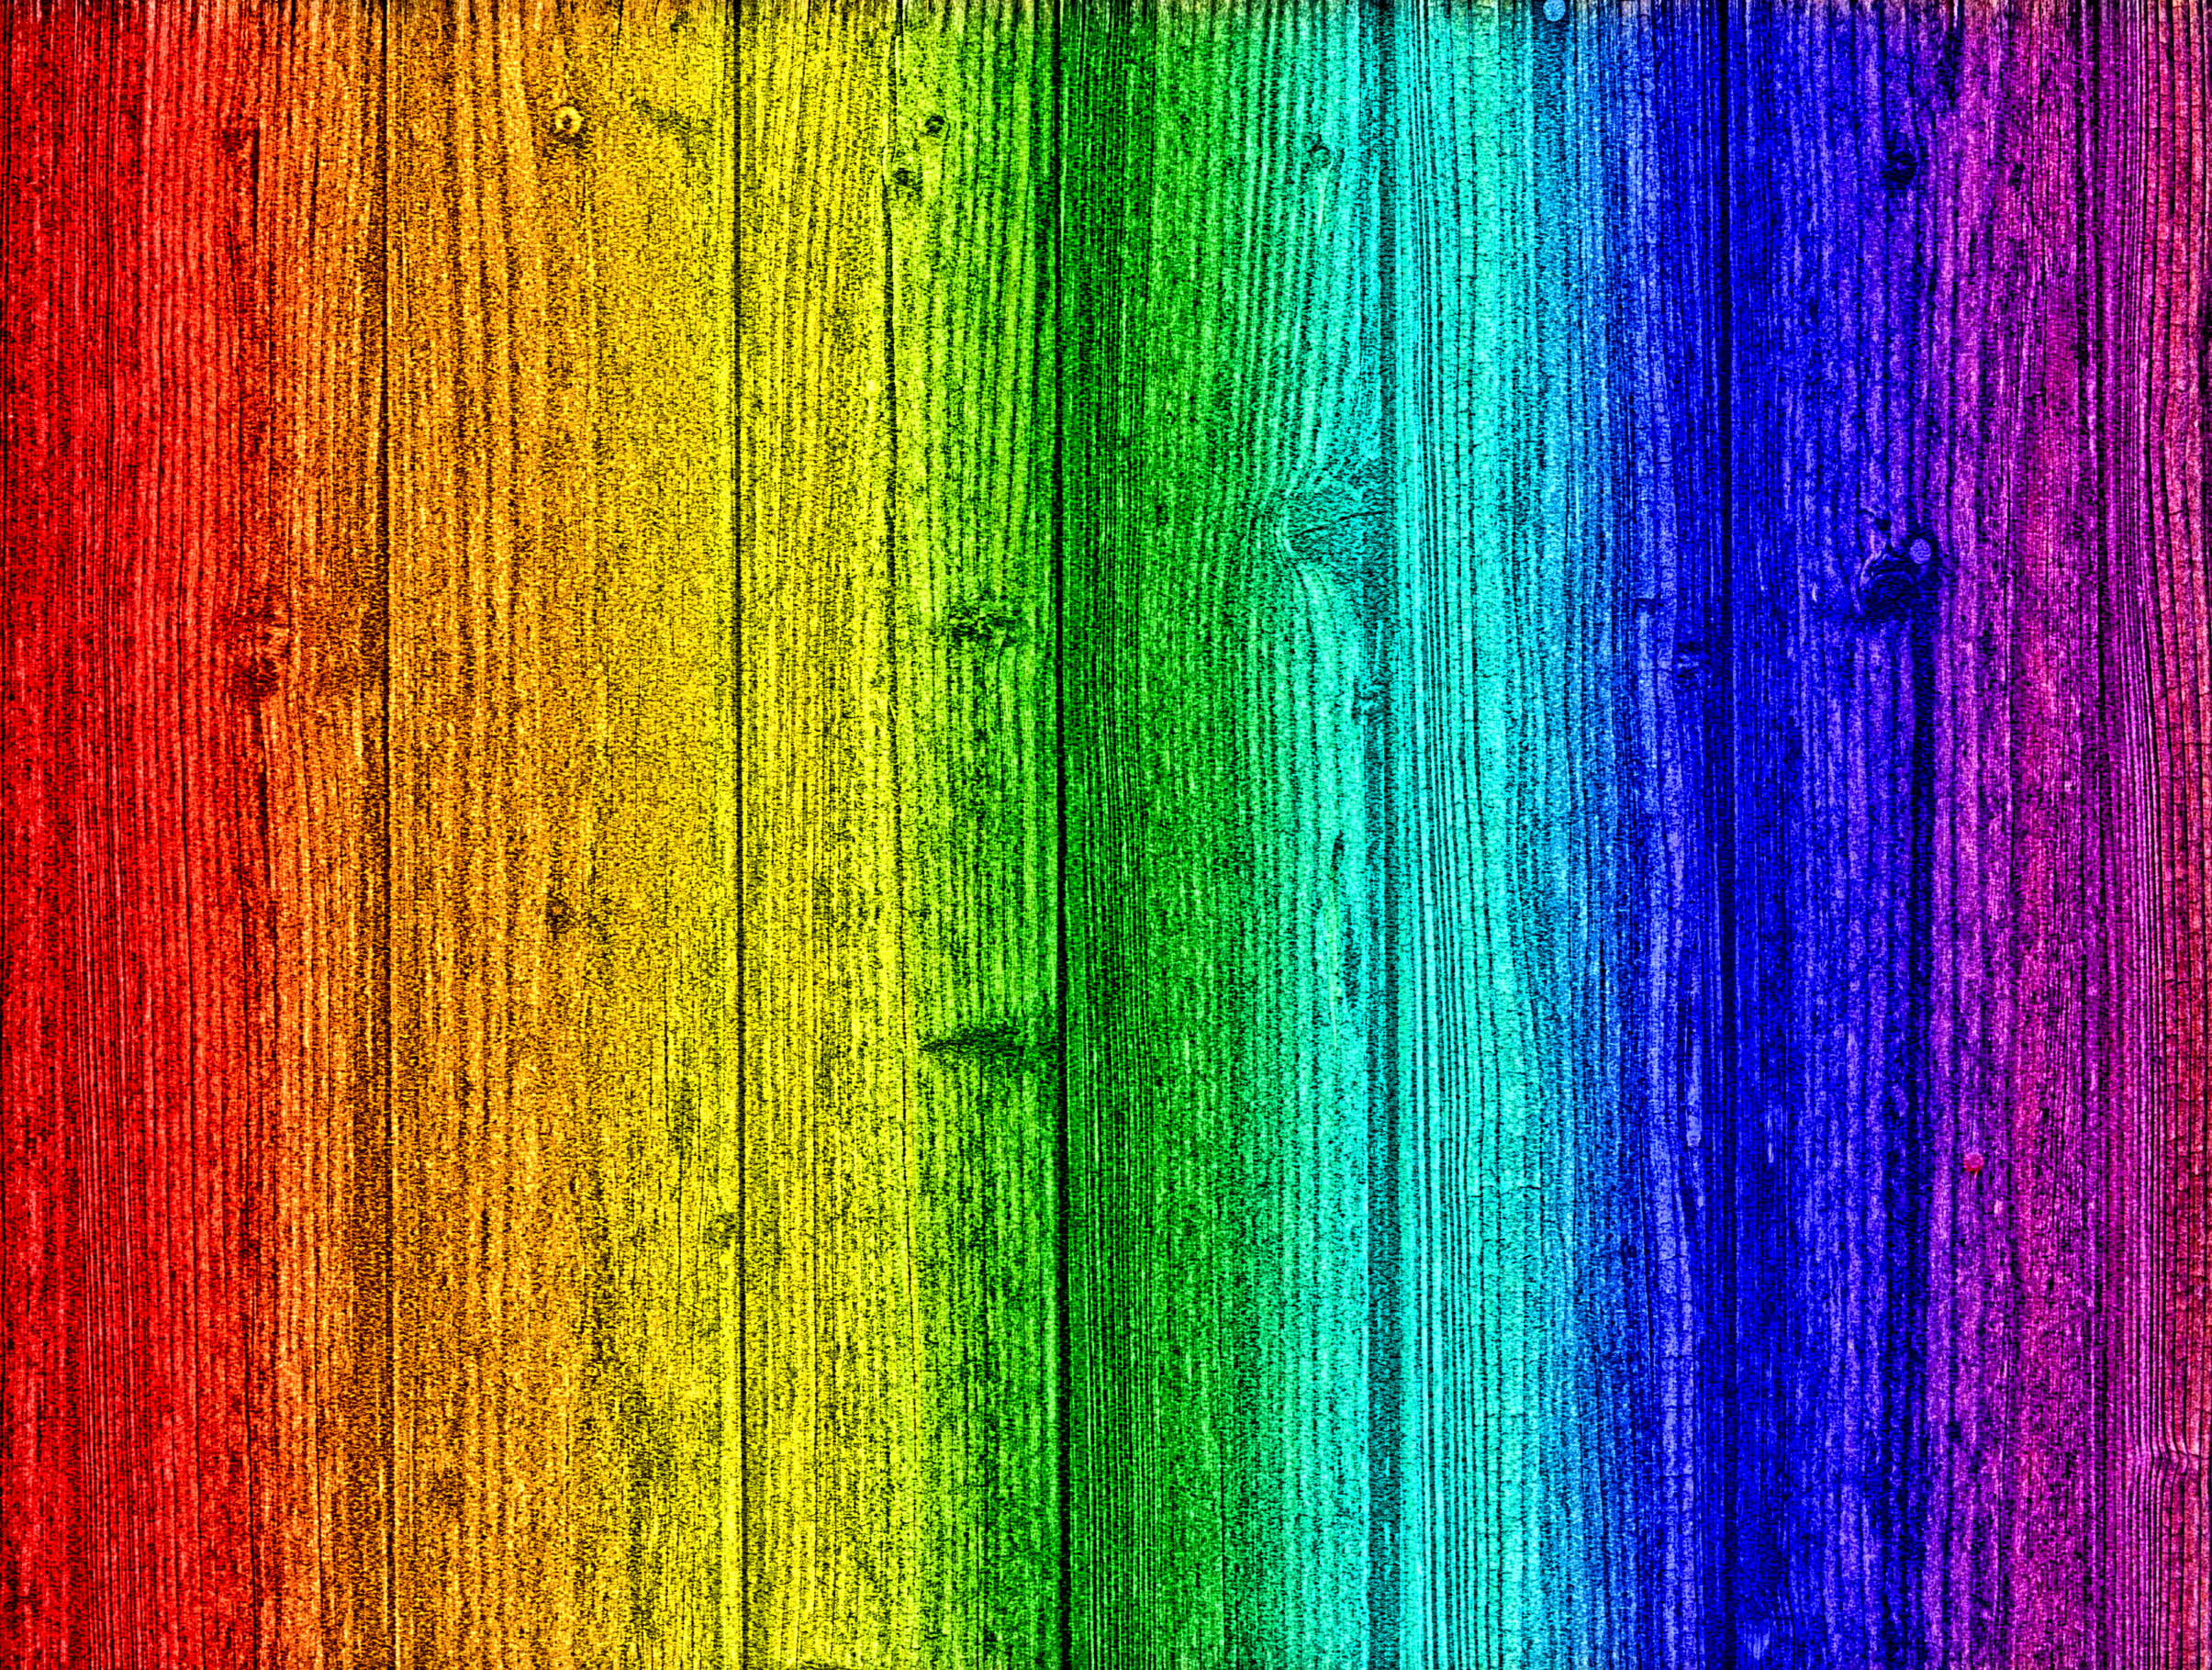 Rainbow on wood - Background, Abstract, Sample, Paint, Palette, HQ Photo